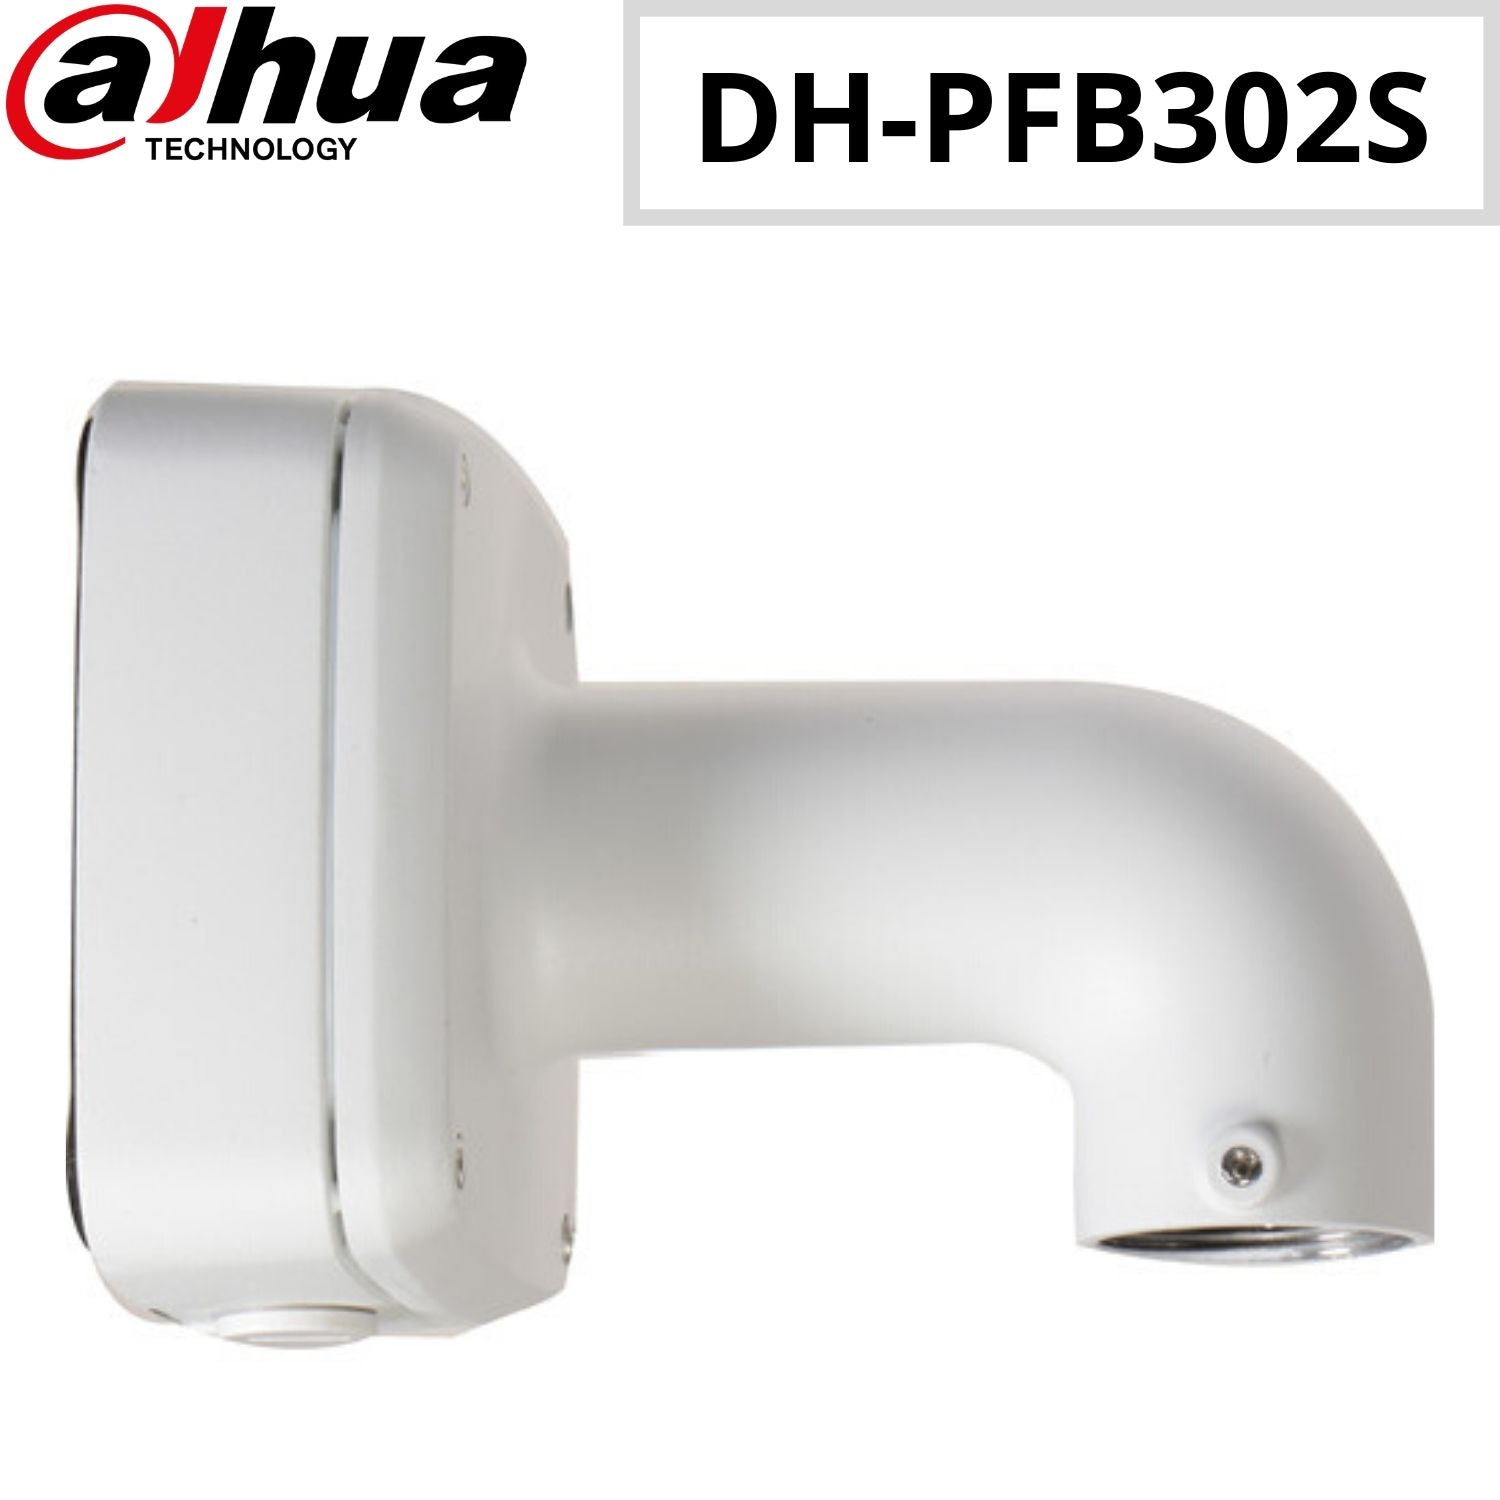 Dahua DH-PFB302S Wall Mount Bracket with IP66 Junction Box